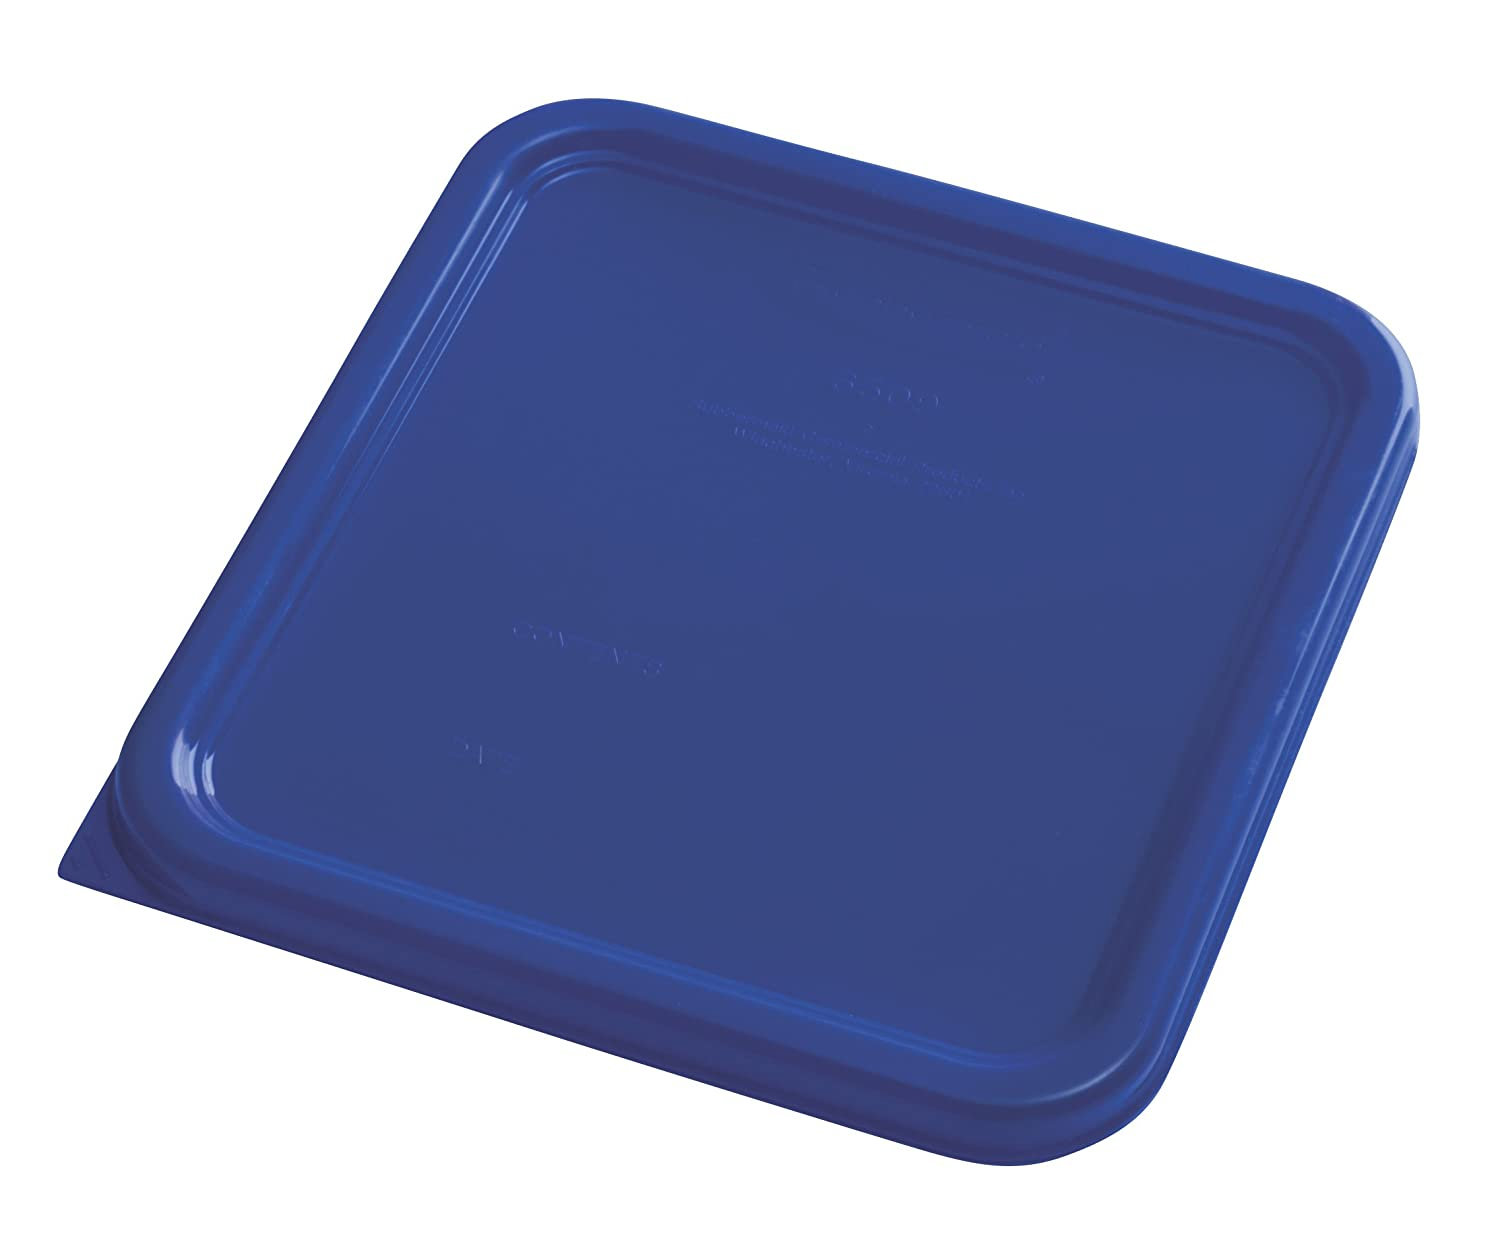 Rubbermaid Commercial Products 1980250 Square Plastic Food Storage Container